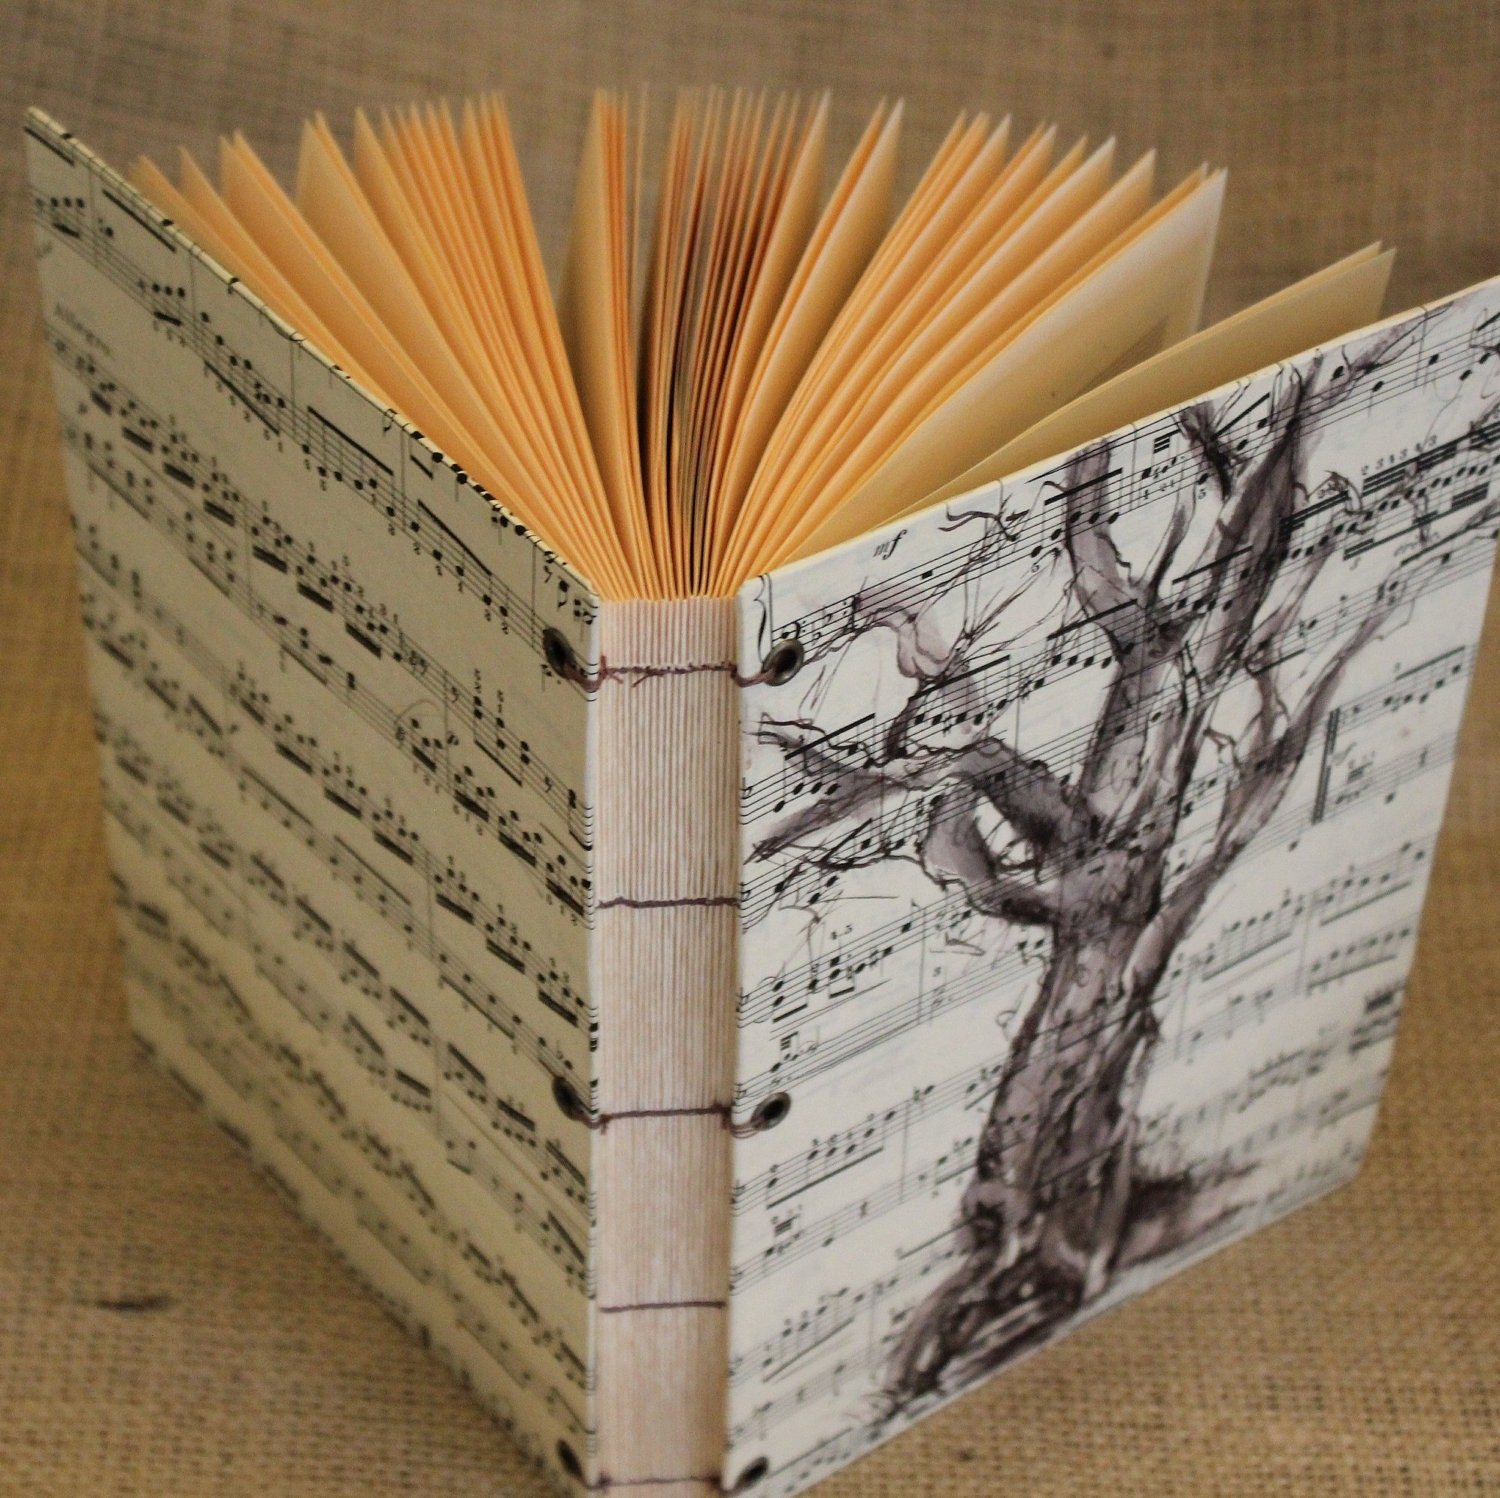 Songwriters Music Journal - Hand Bound - Pen And Ink Tree Drawing - Lined With Music Bars